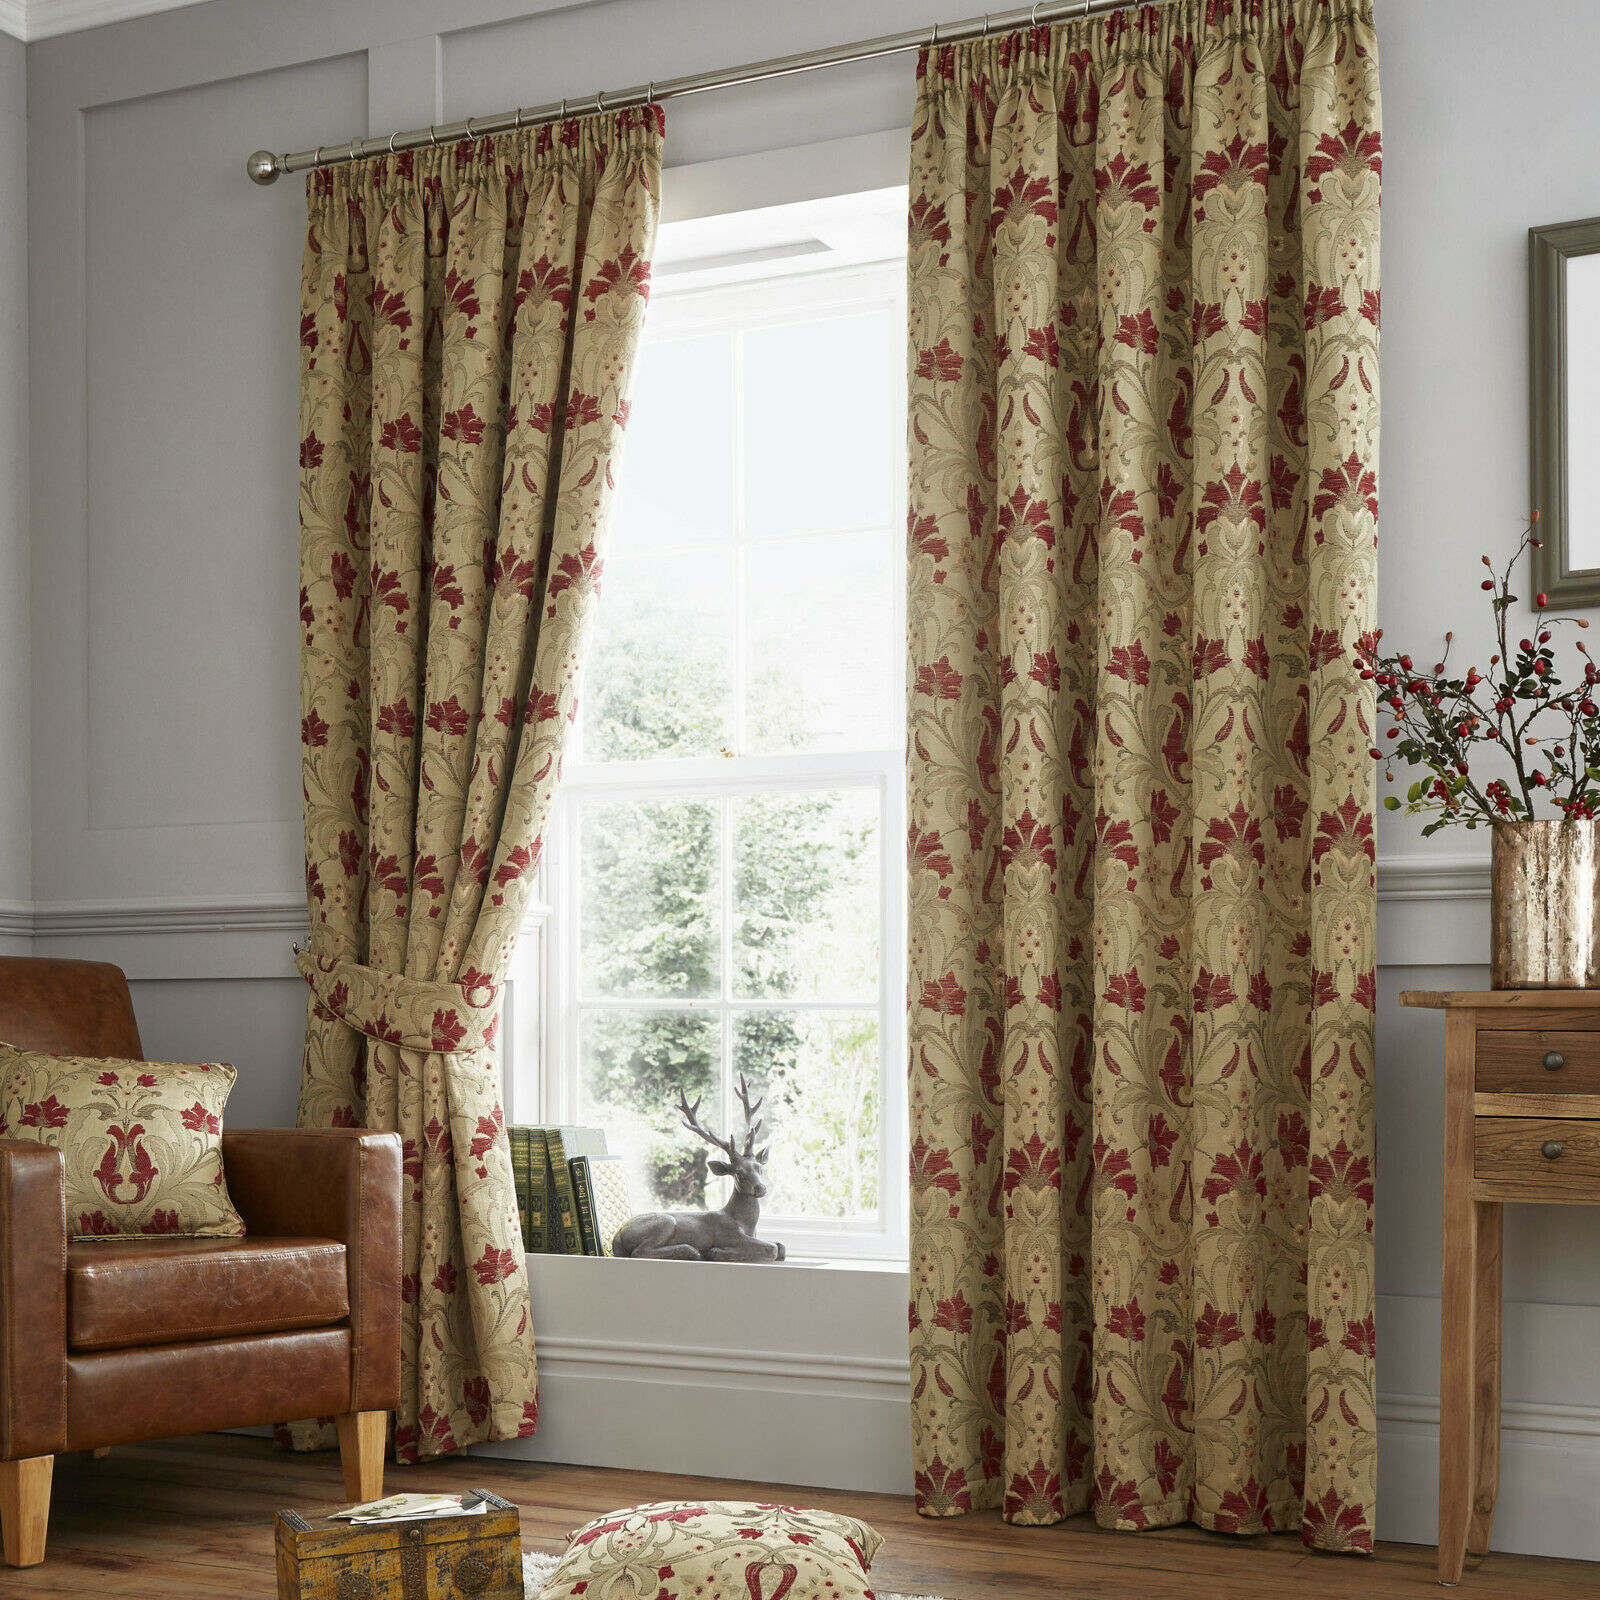 Luxury Ready Made Pencil Pleat Curtains Burford Red Gold 1 Of 3free Shipping